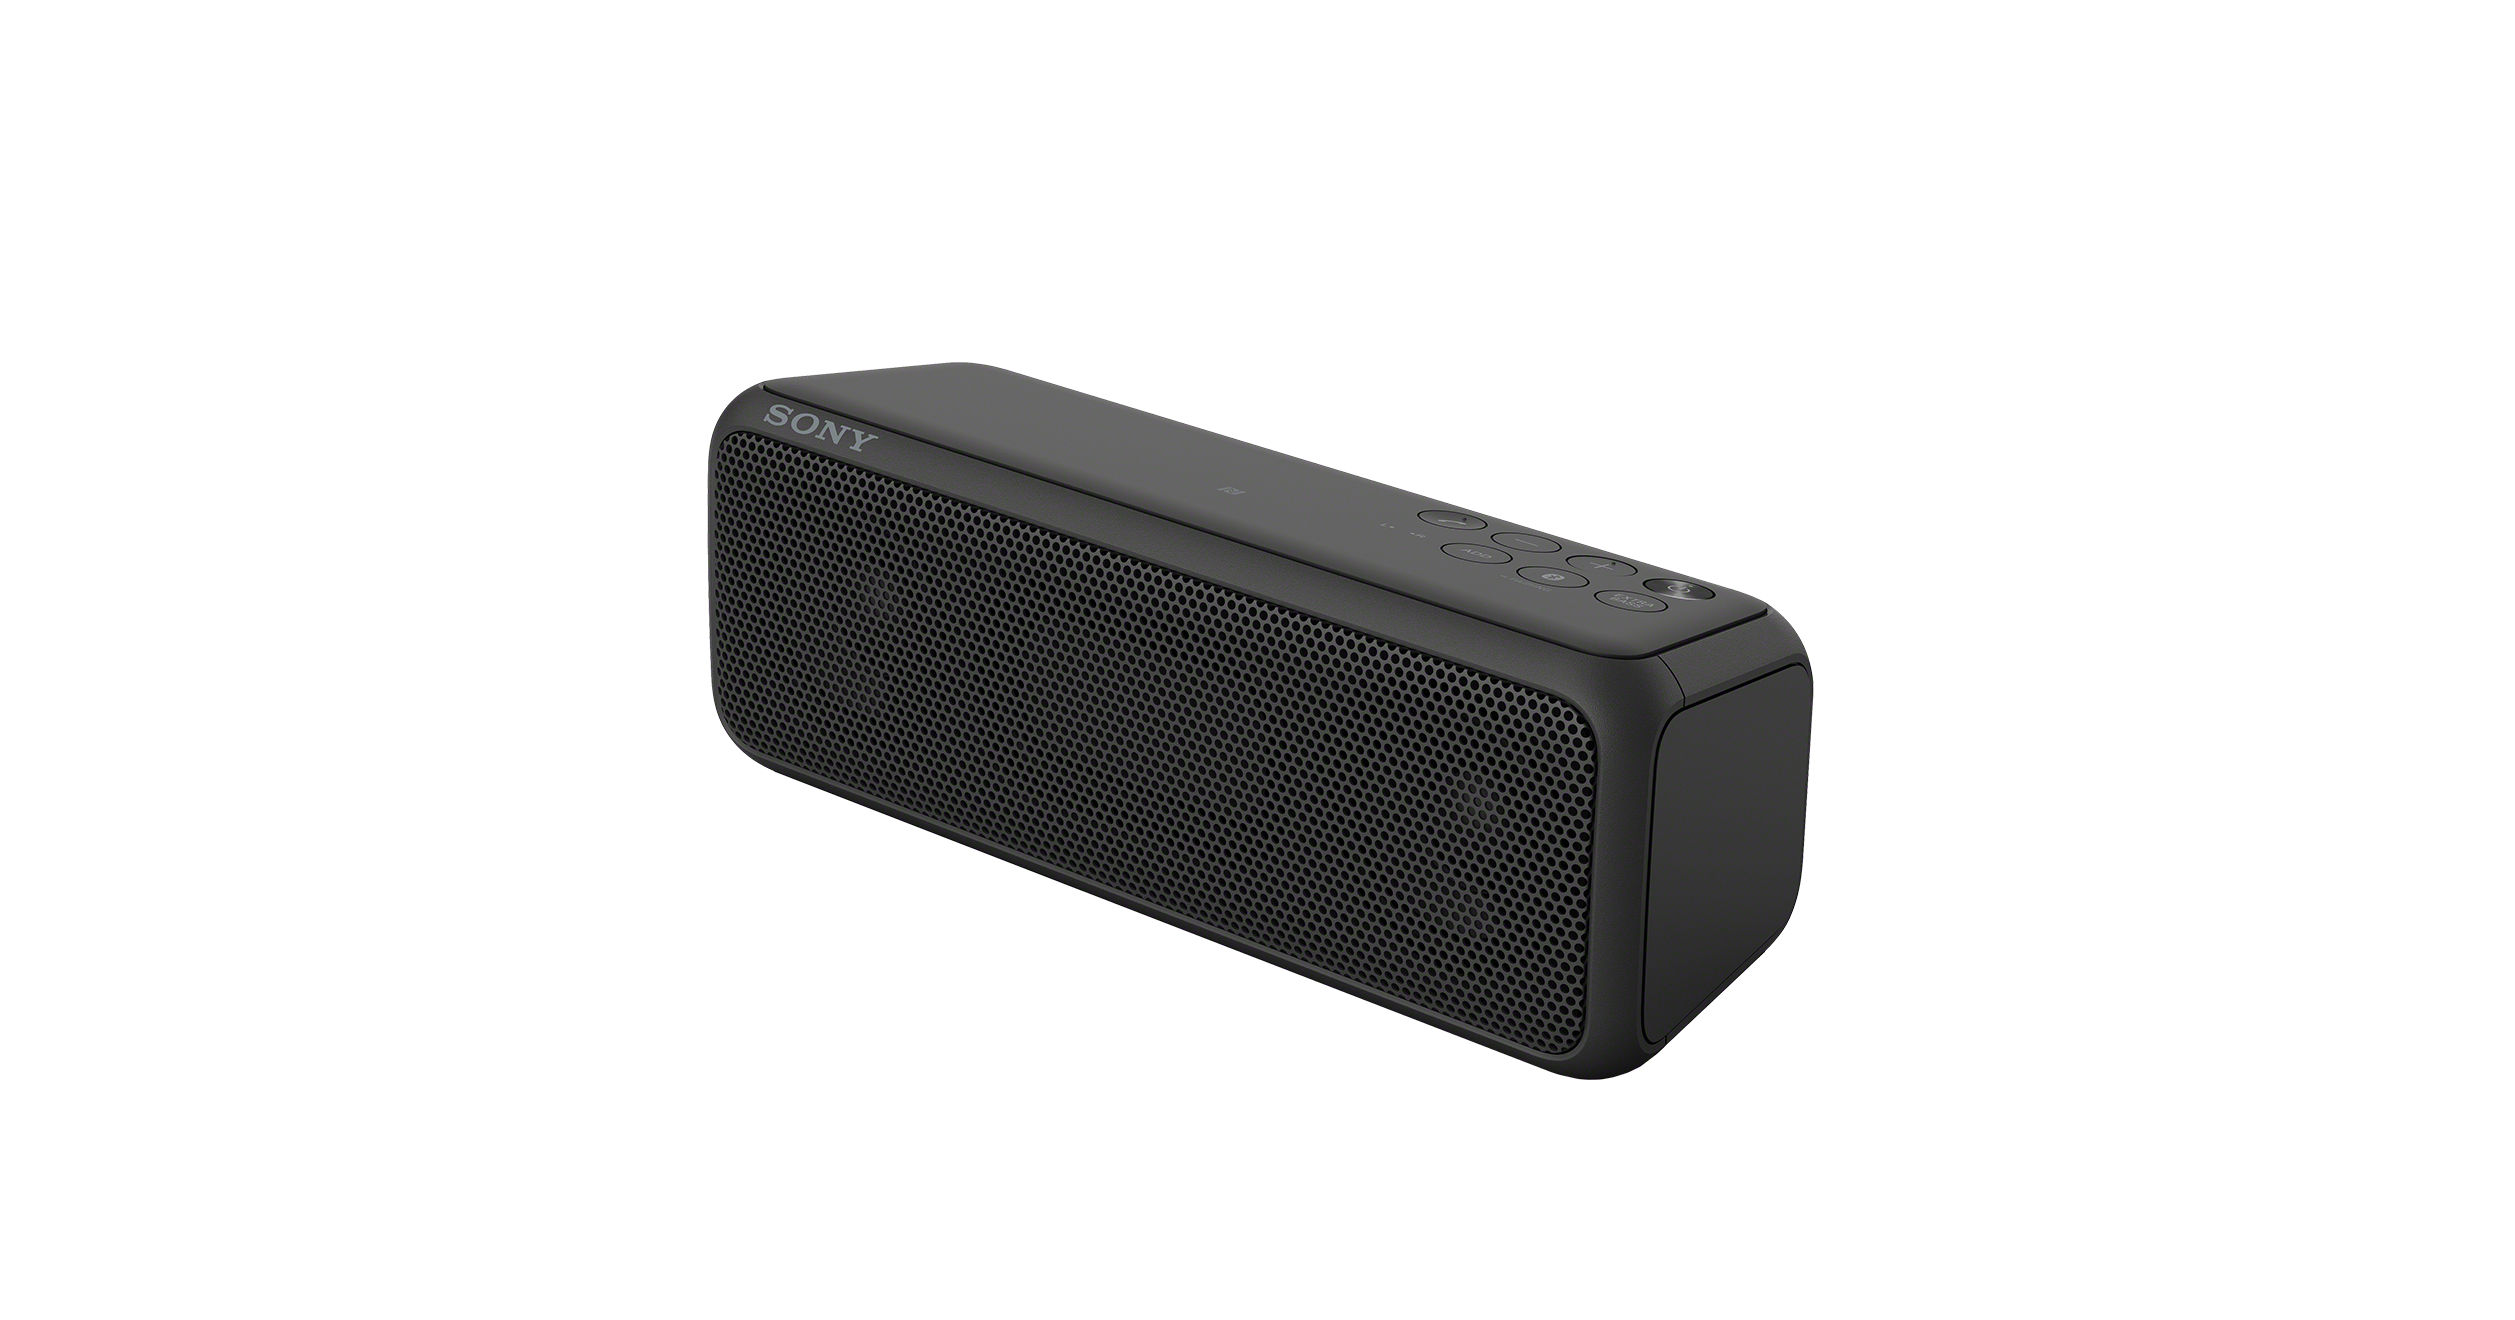 Sony Srs Xb3 Portable Wireless Speaker Launched At Rs 12990